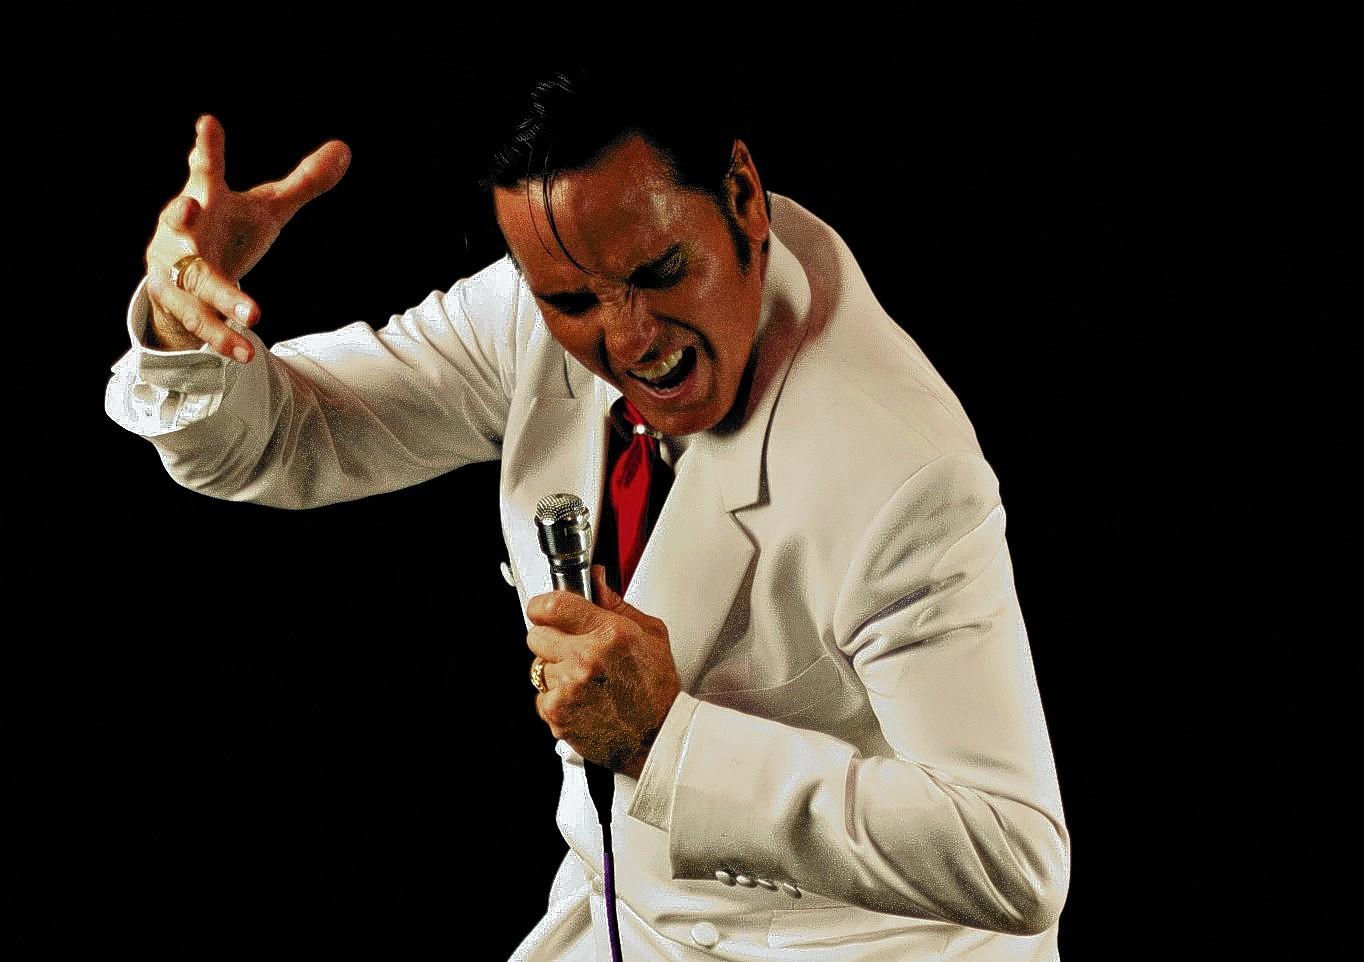 David Jericko, who performs as Elvis.